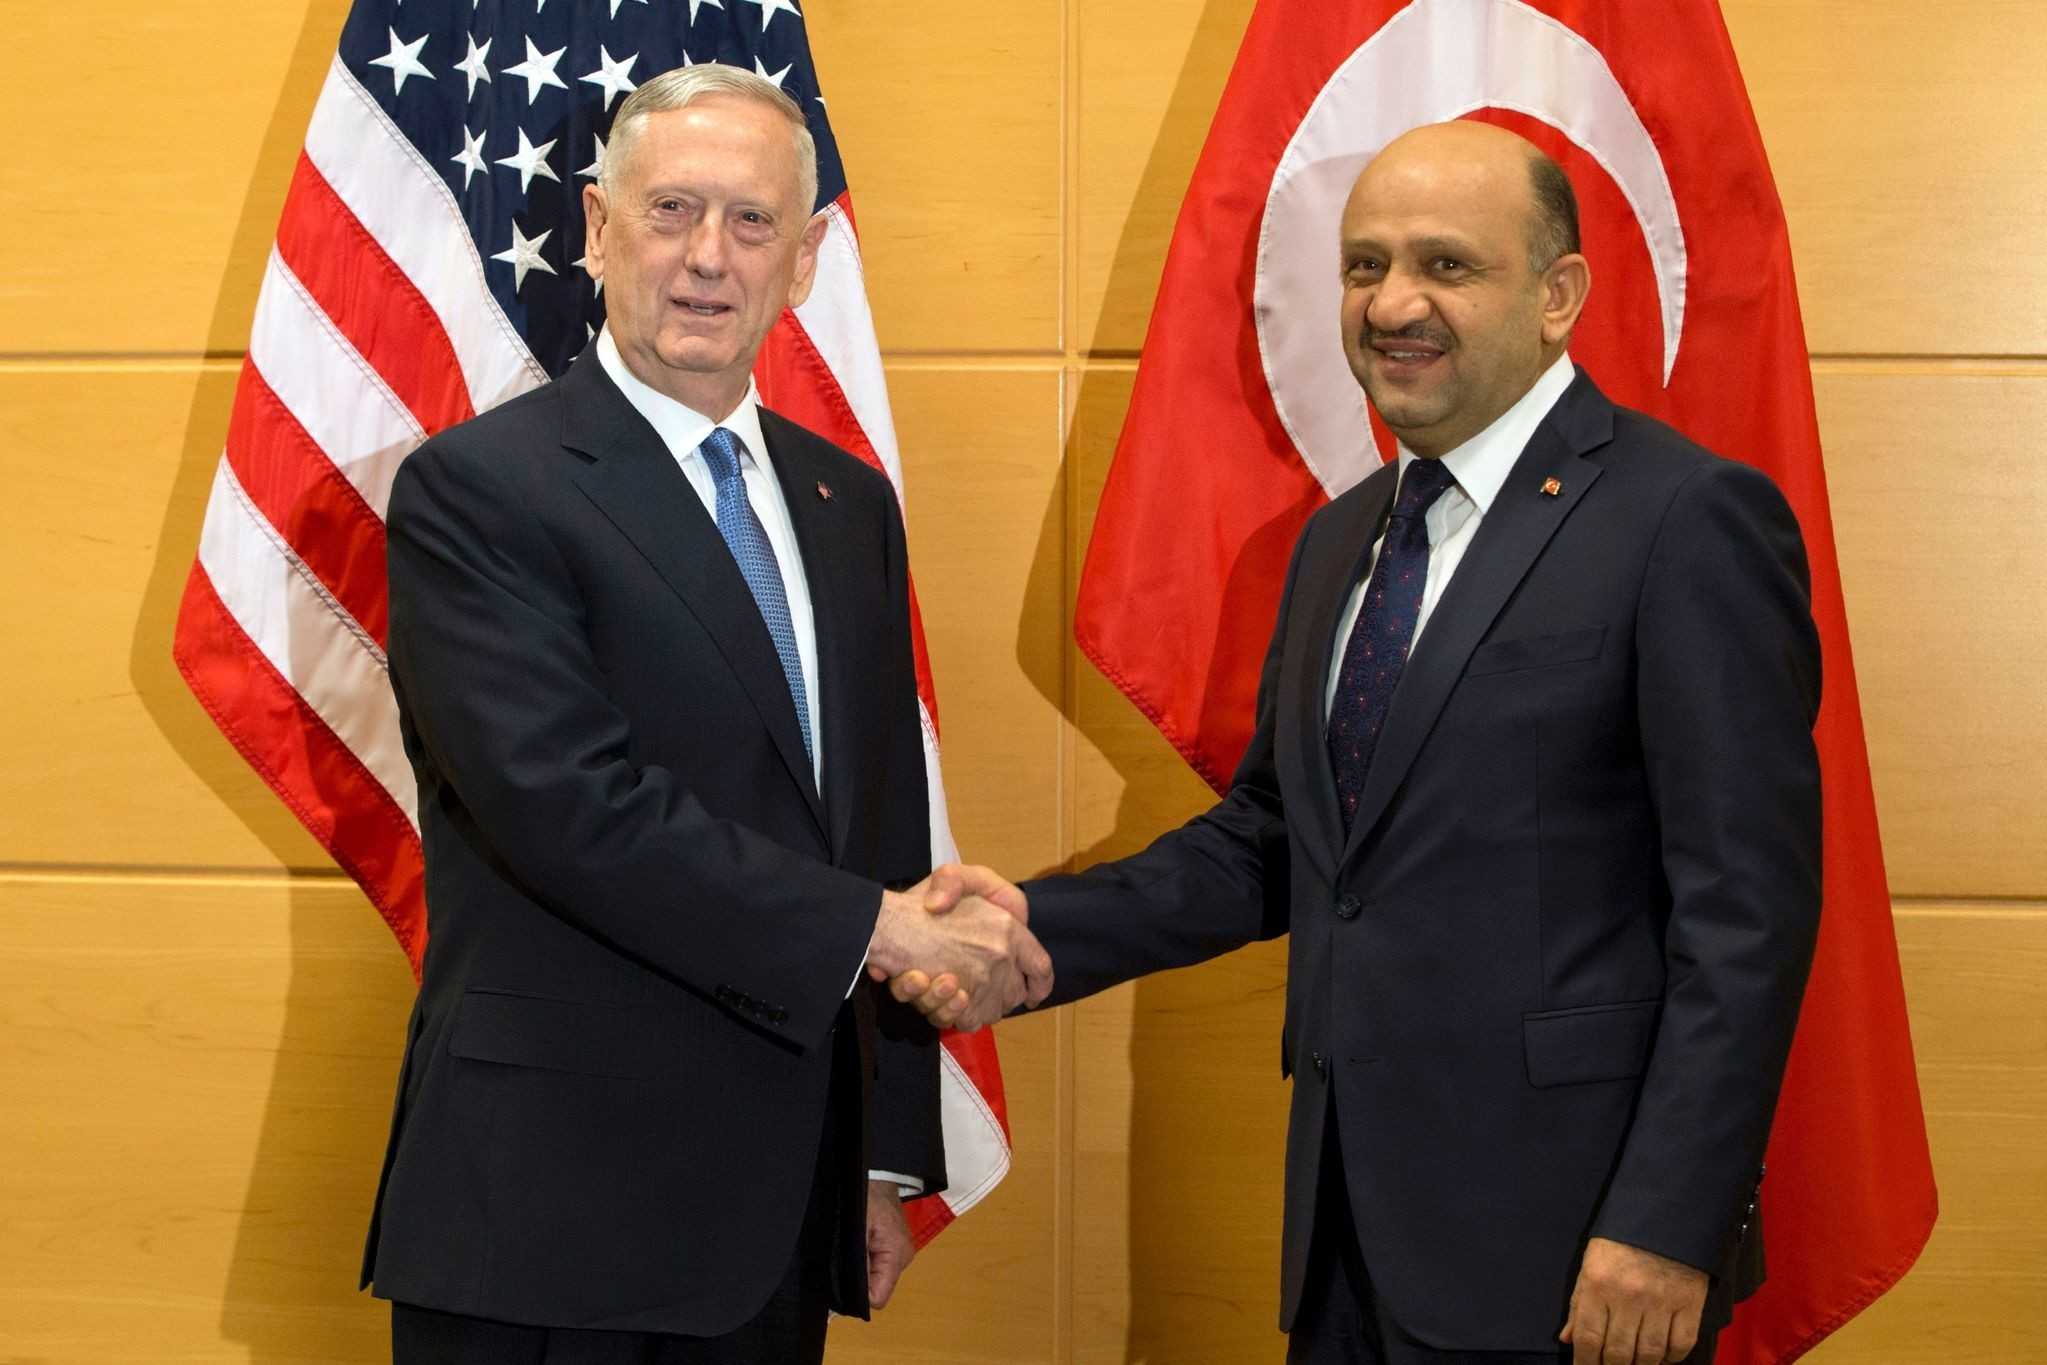 U.S. Secretary of Defense James Mattis (L) shakes hands with Turkish Defense Minister Fikri Isik during a meeting at NATO headquarters. (AFP Photo)